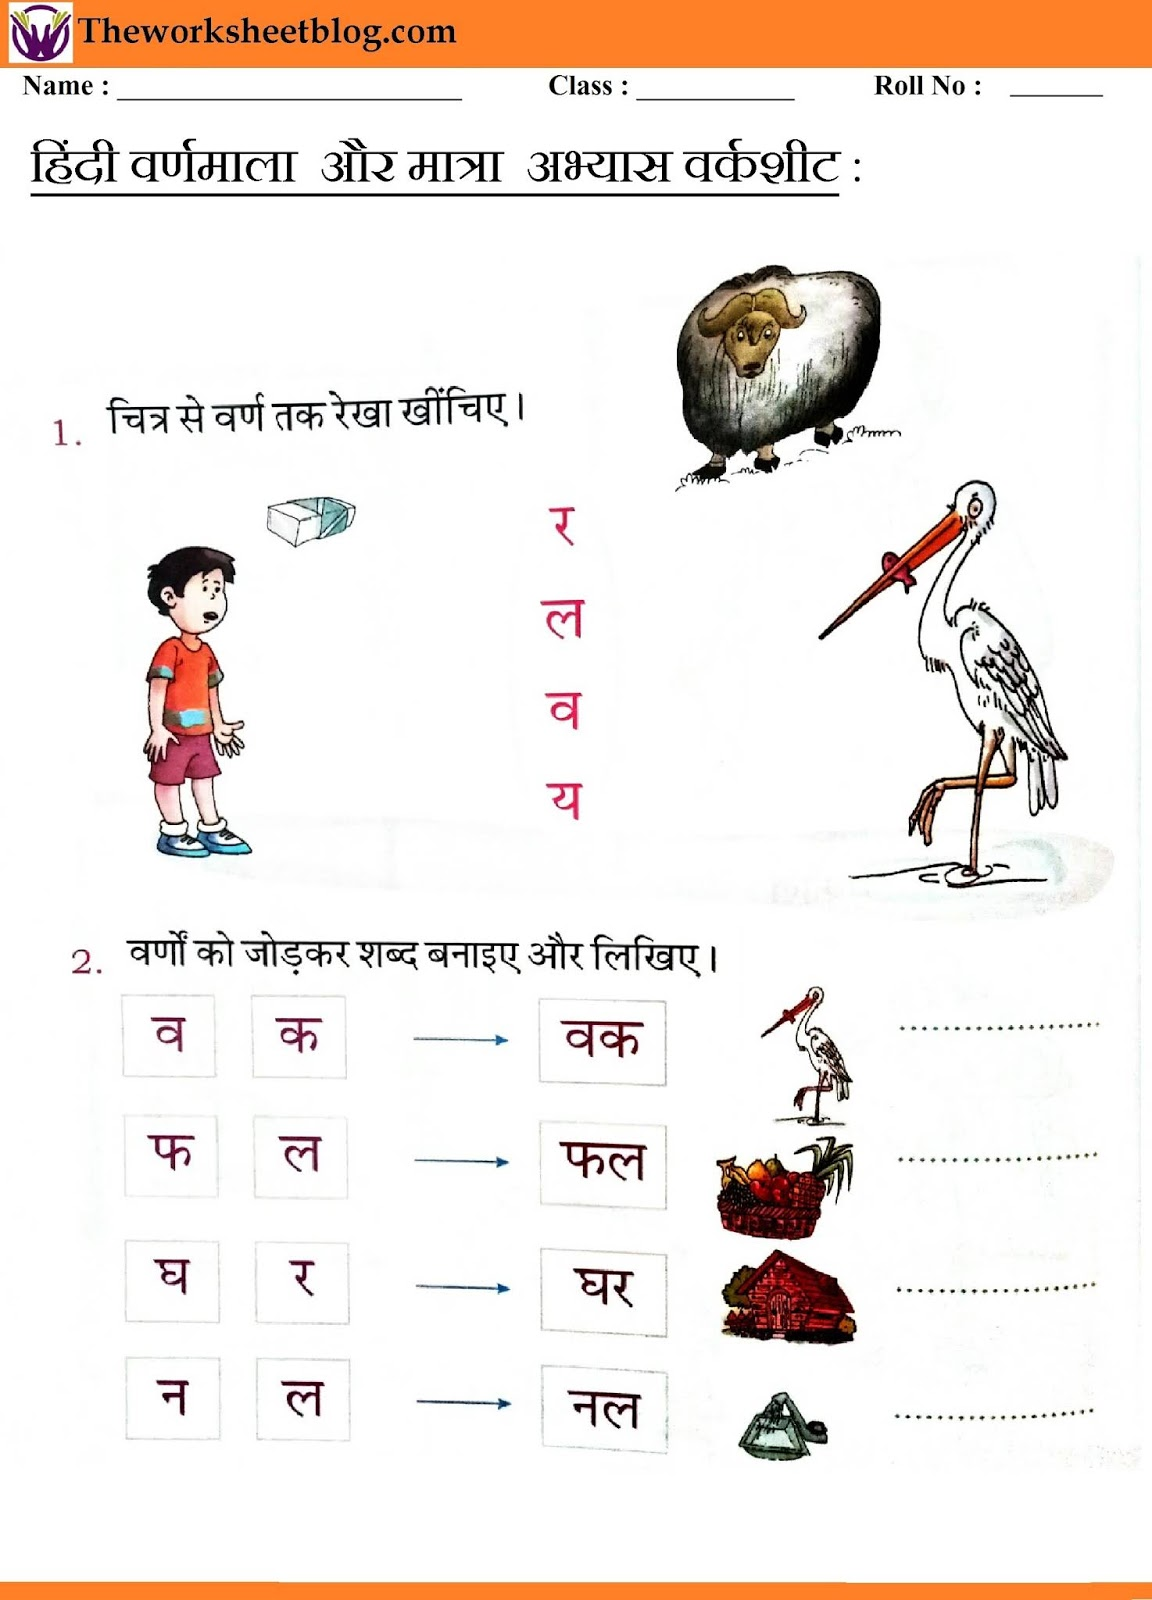 Hindi Matra Gyan Worksheets